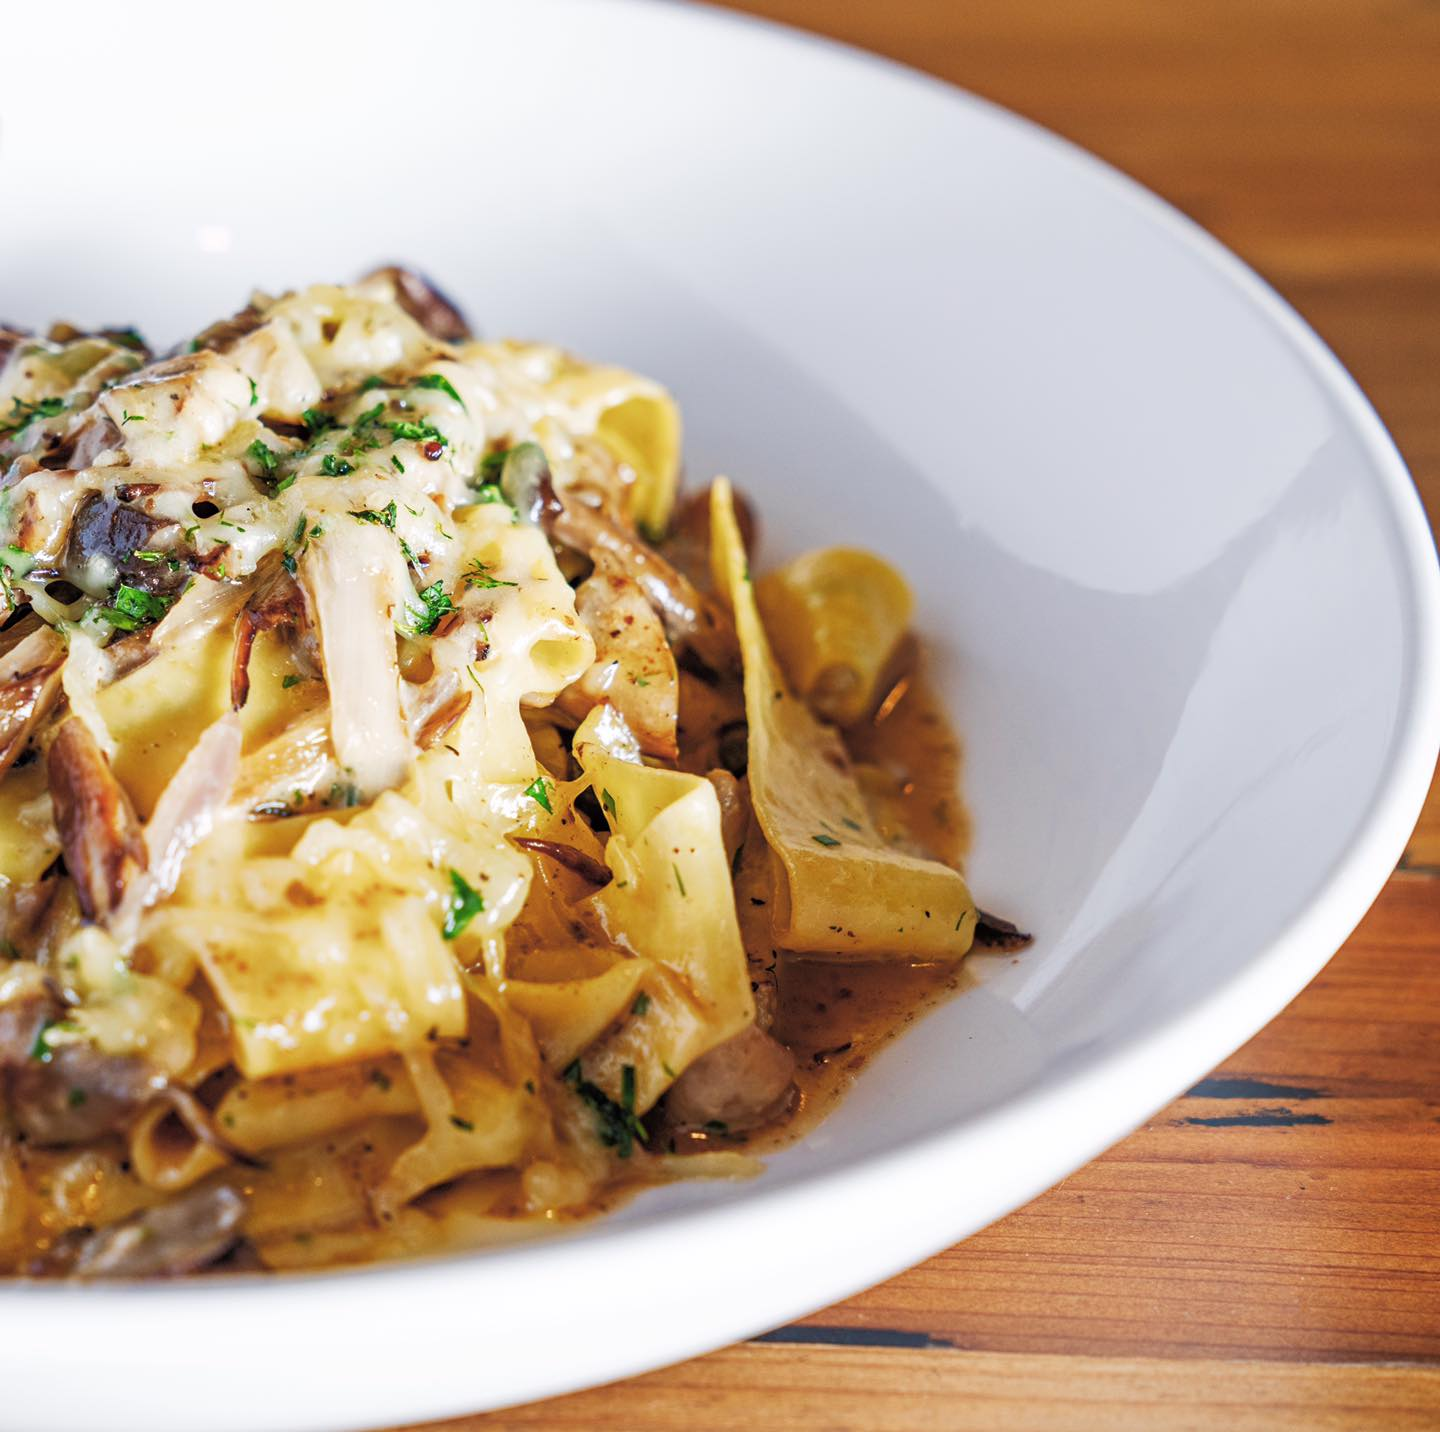 Pappardelle pasta with chicken, mushrooms, and truffle cheese fondue